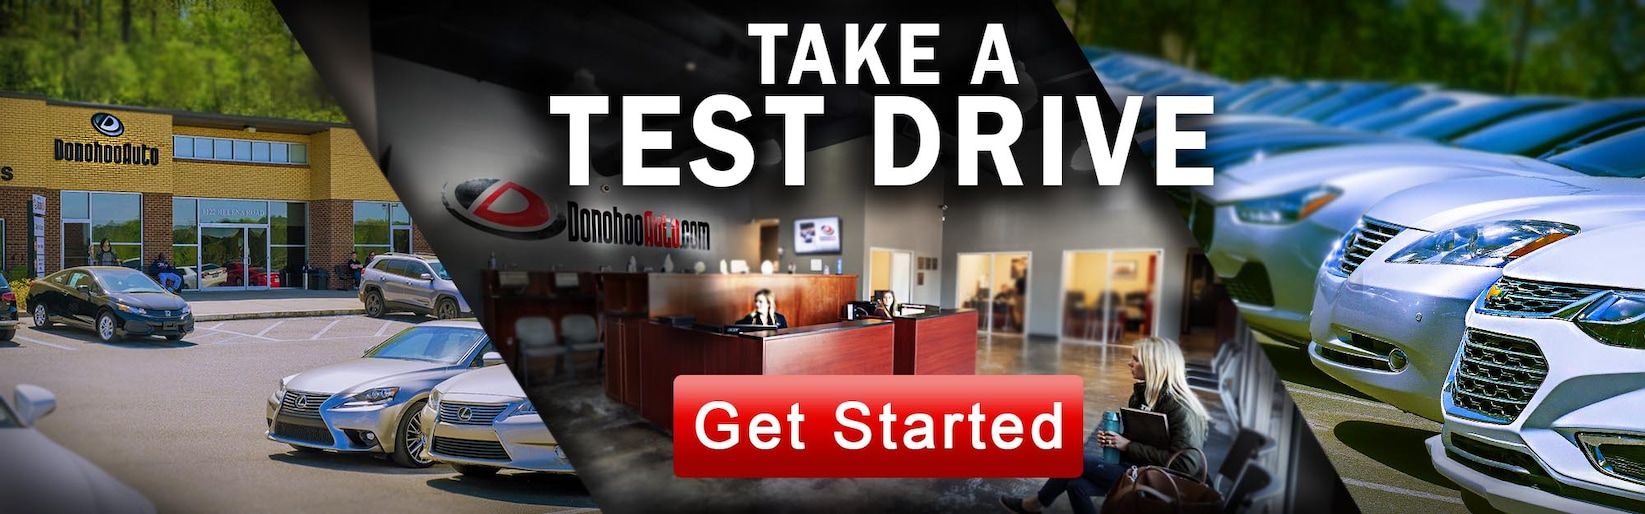 Used Luxury Cars Near Birmingham DonohooAuto In Pelham AL Used - What is a dealer invoice rocco online store